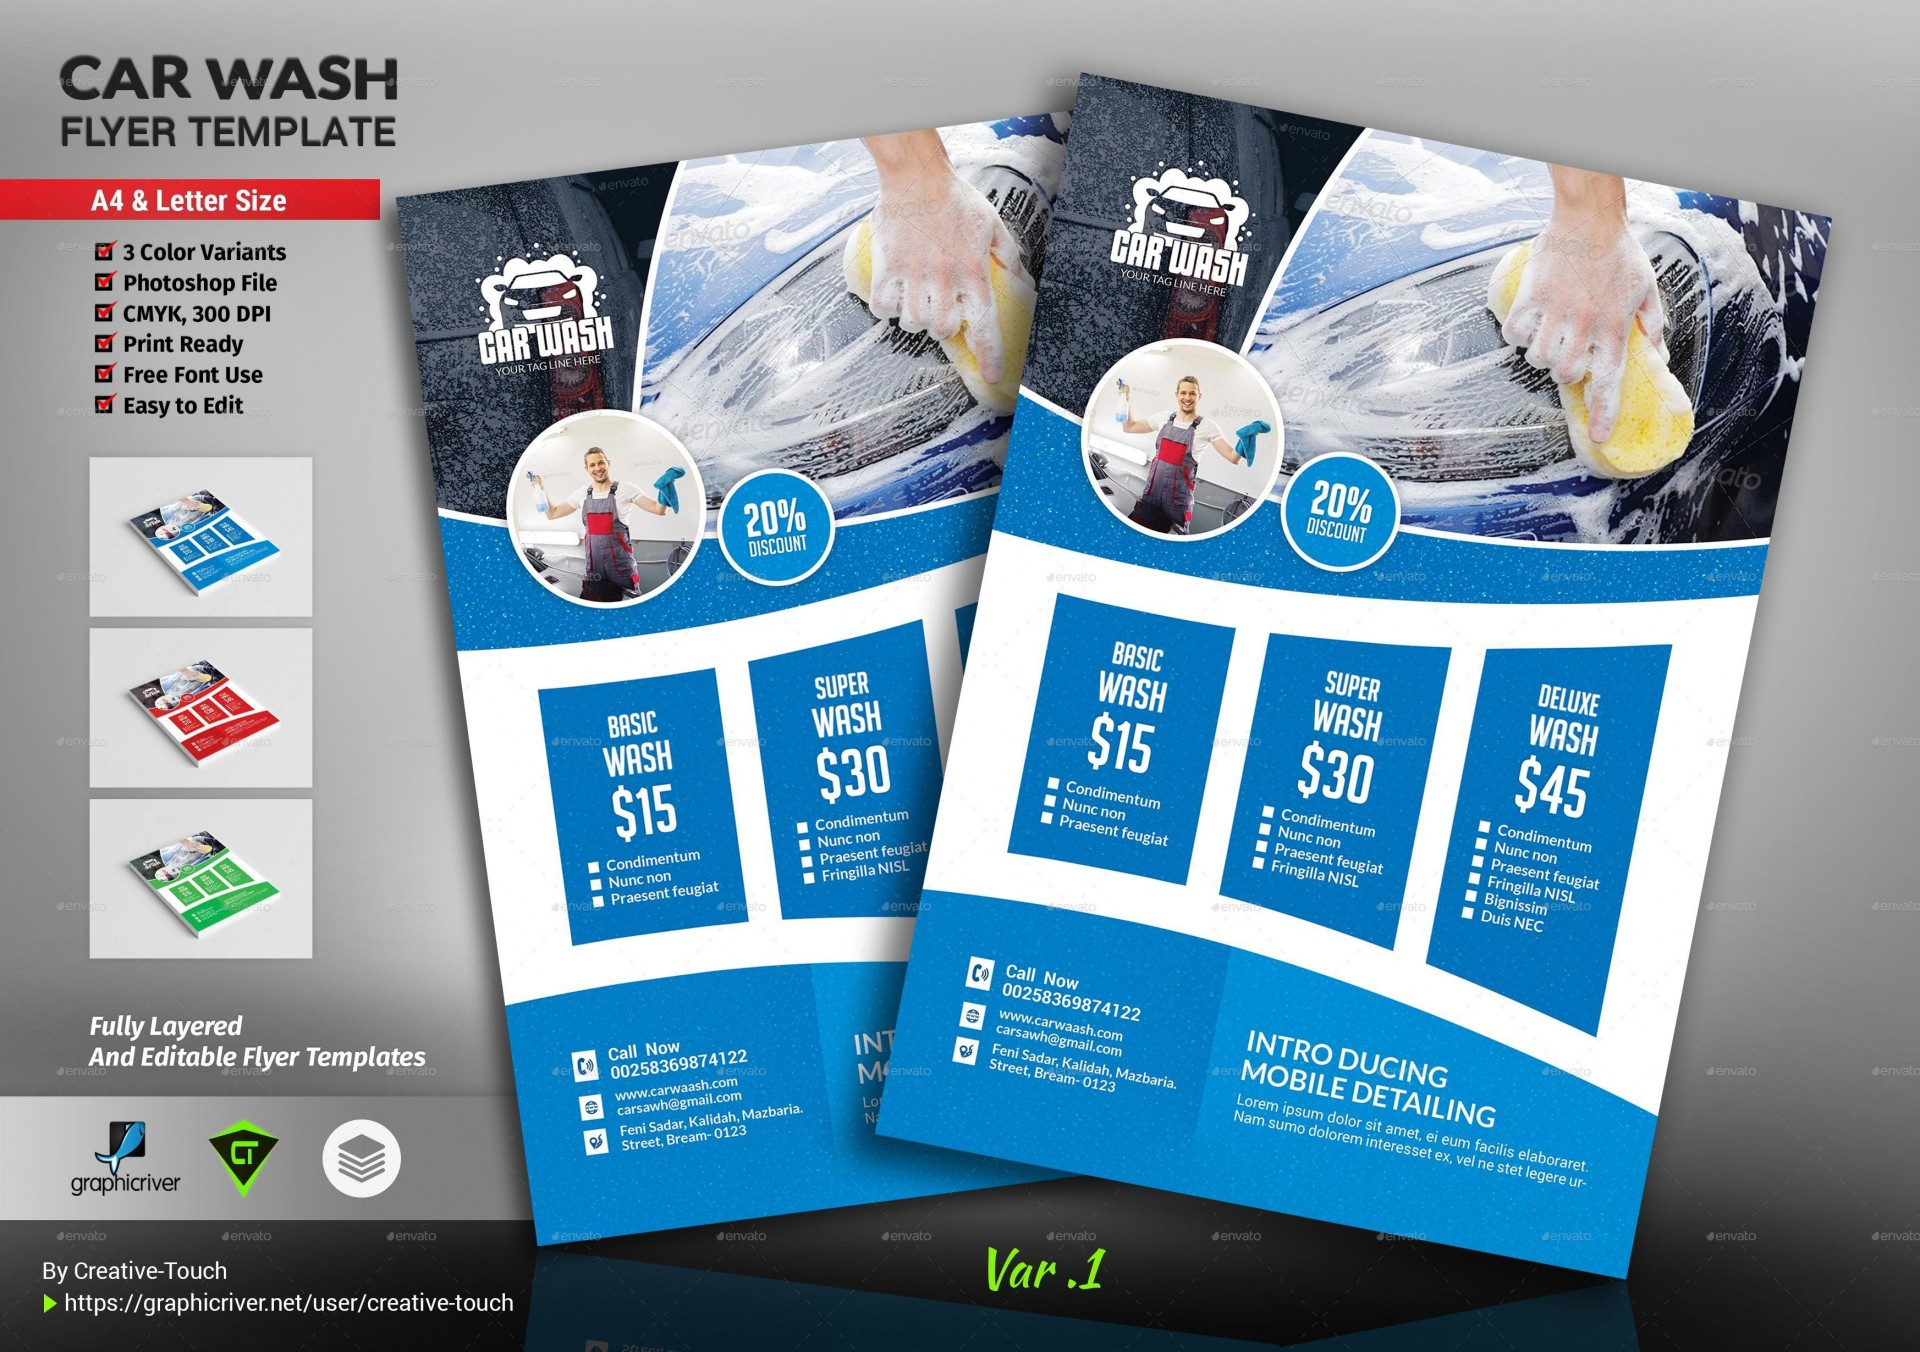 000 Incredible Car Wash Flyer Template Photo  Free Fundraiser Download1920